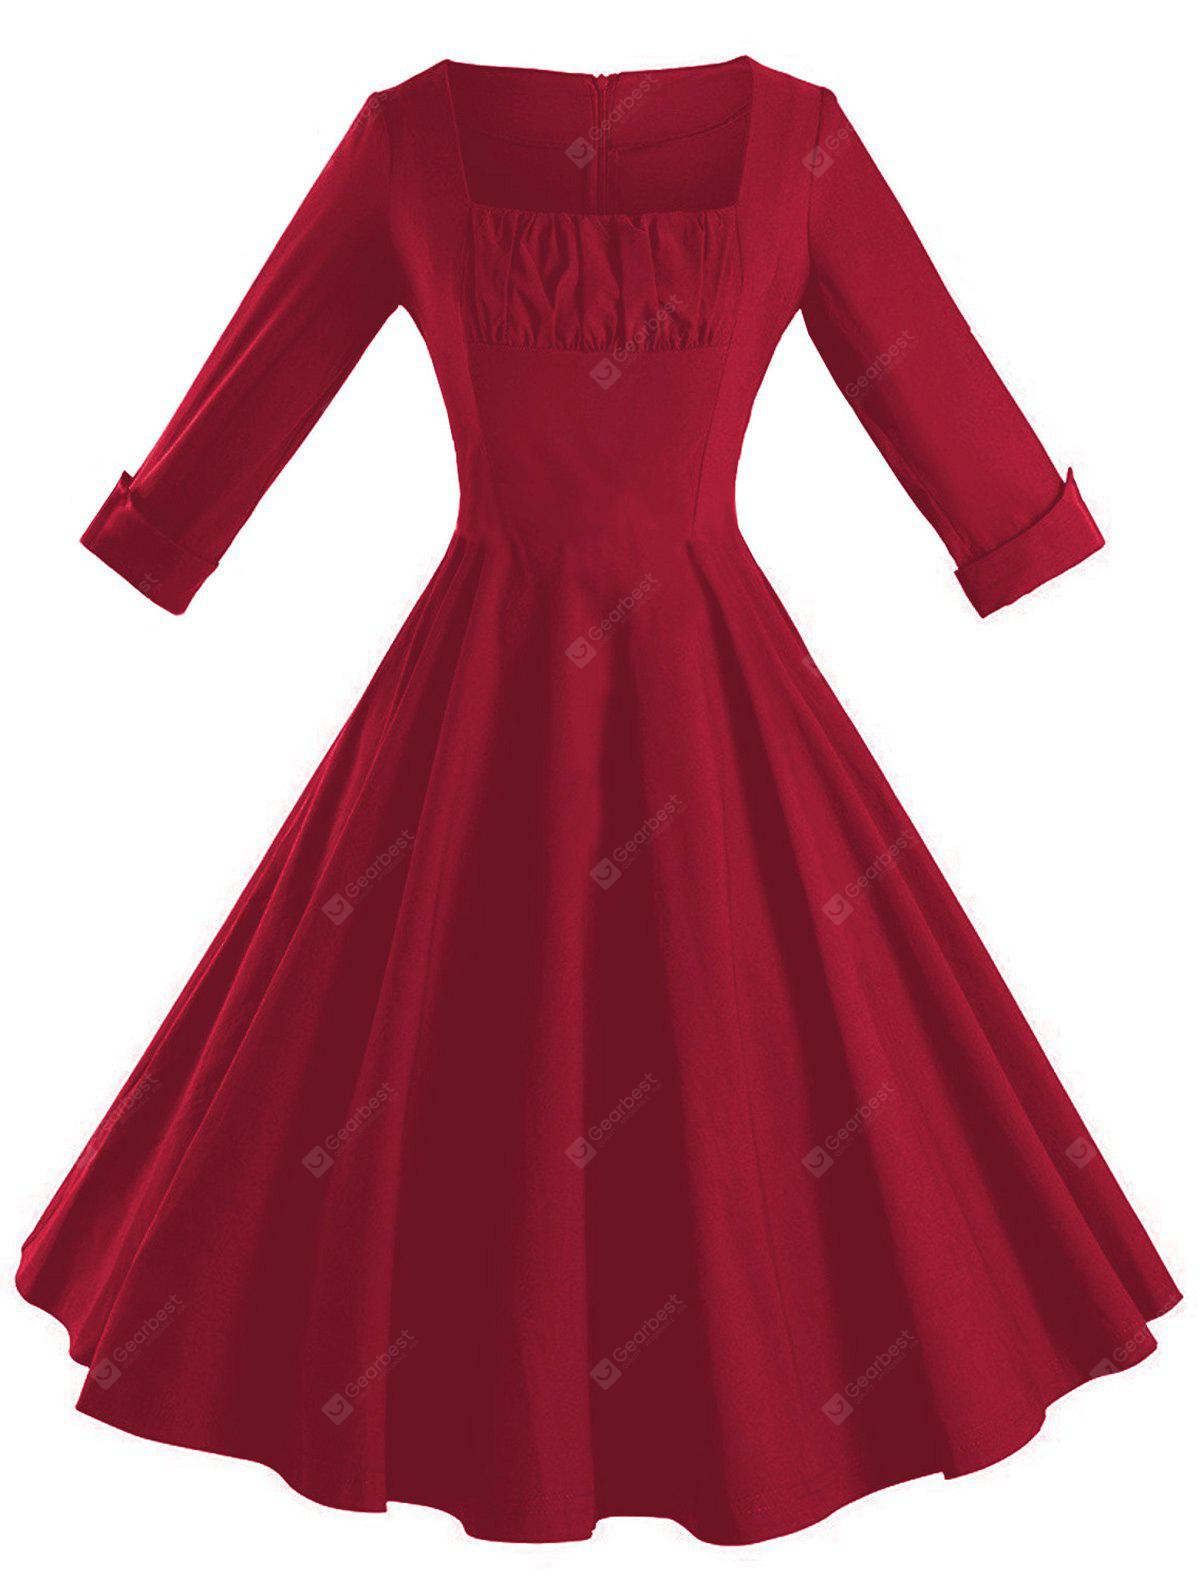 Square Neck Fit and Flare Vintage Dress